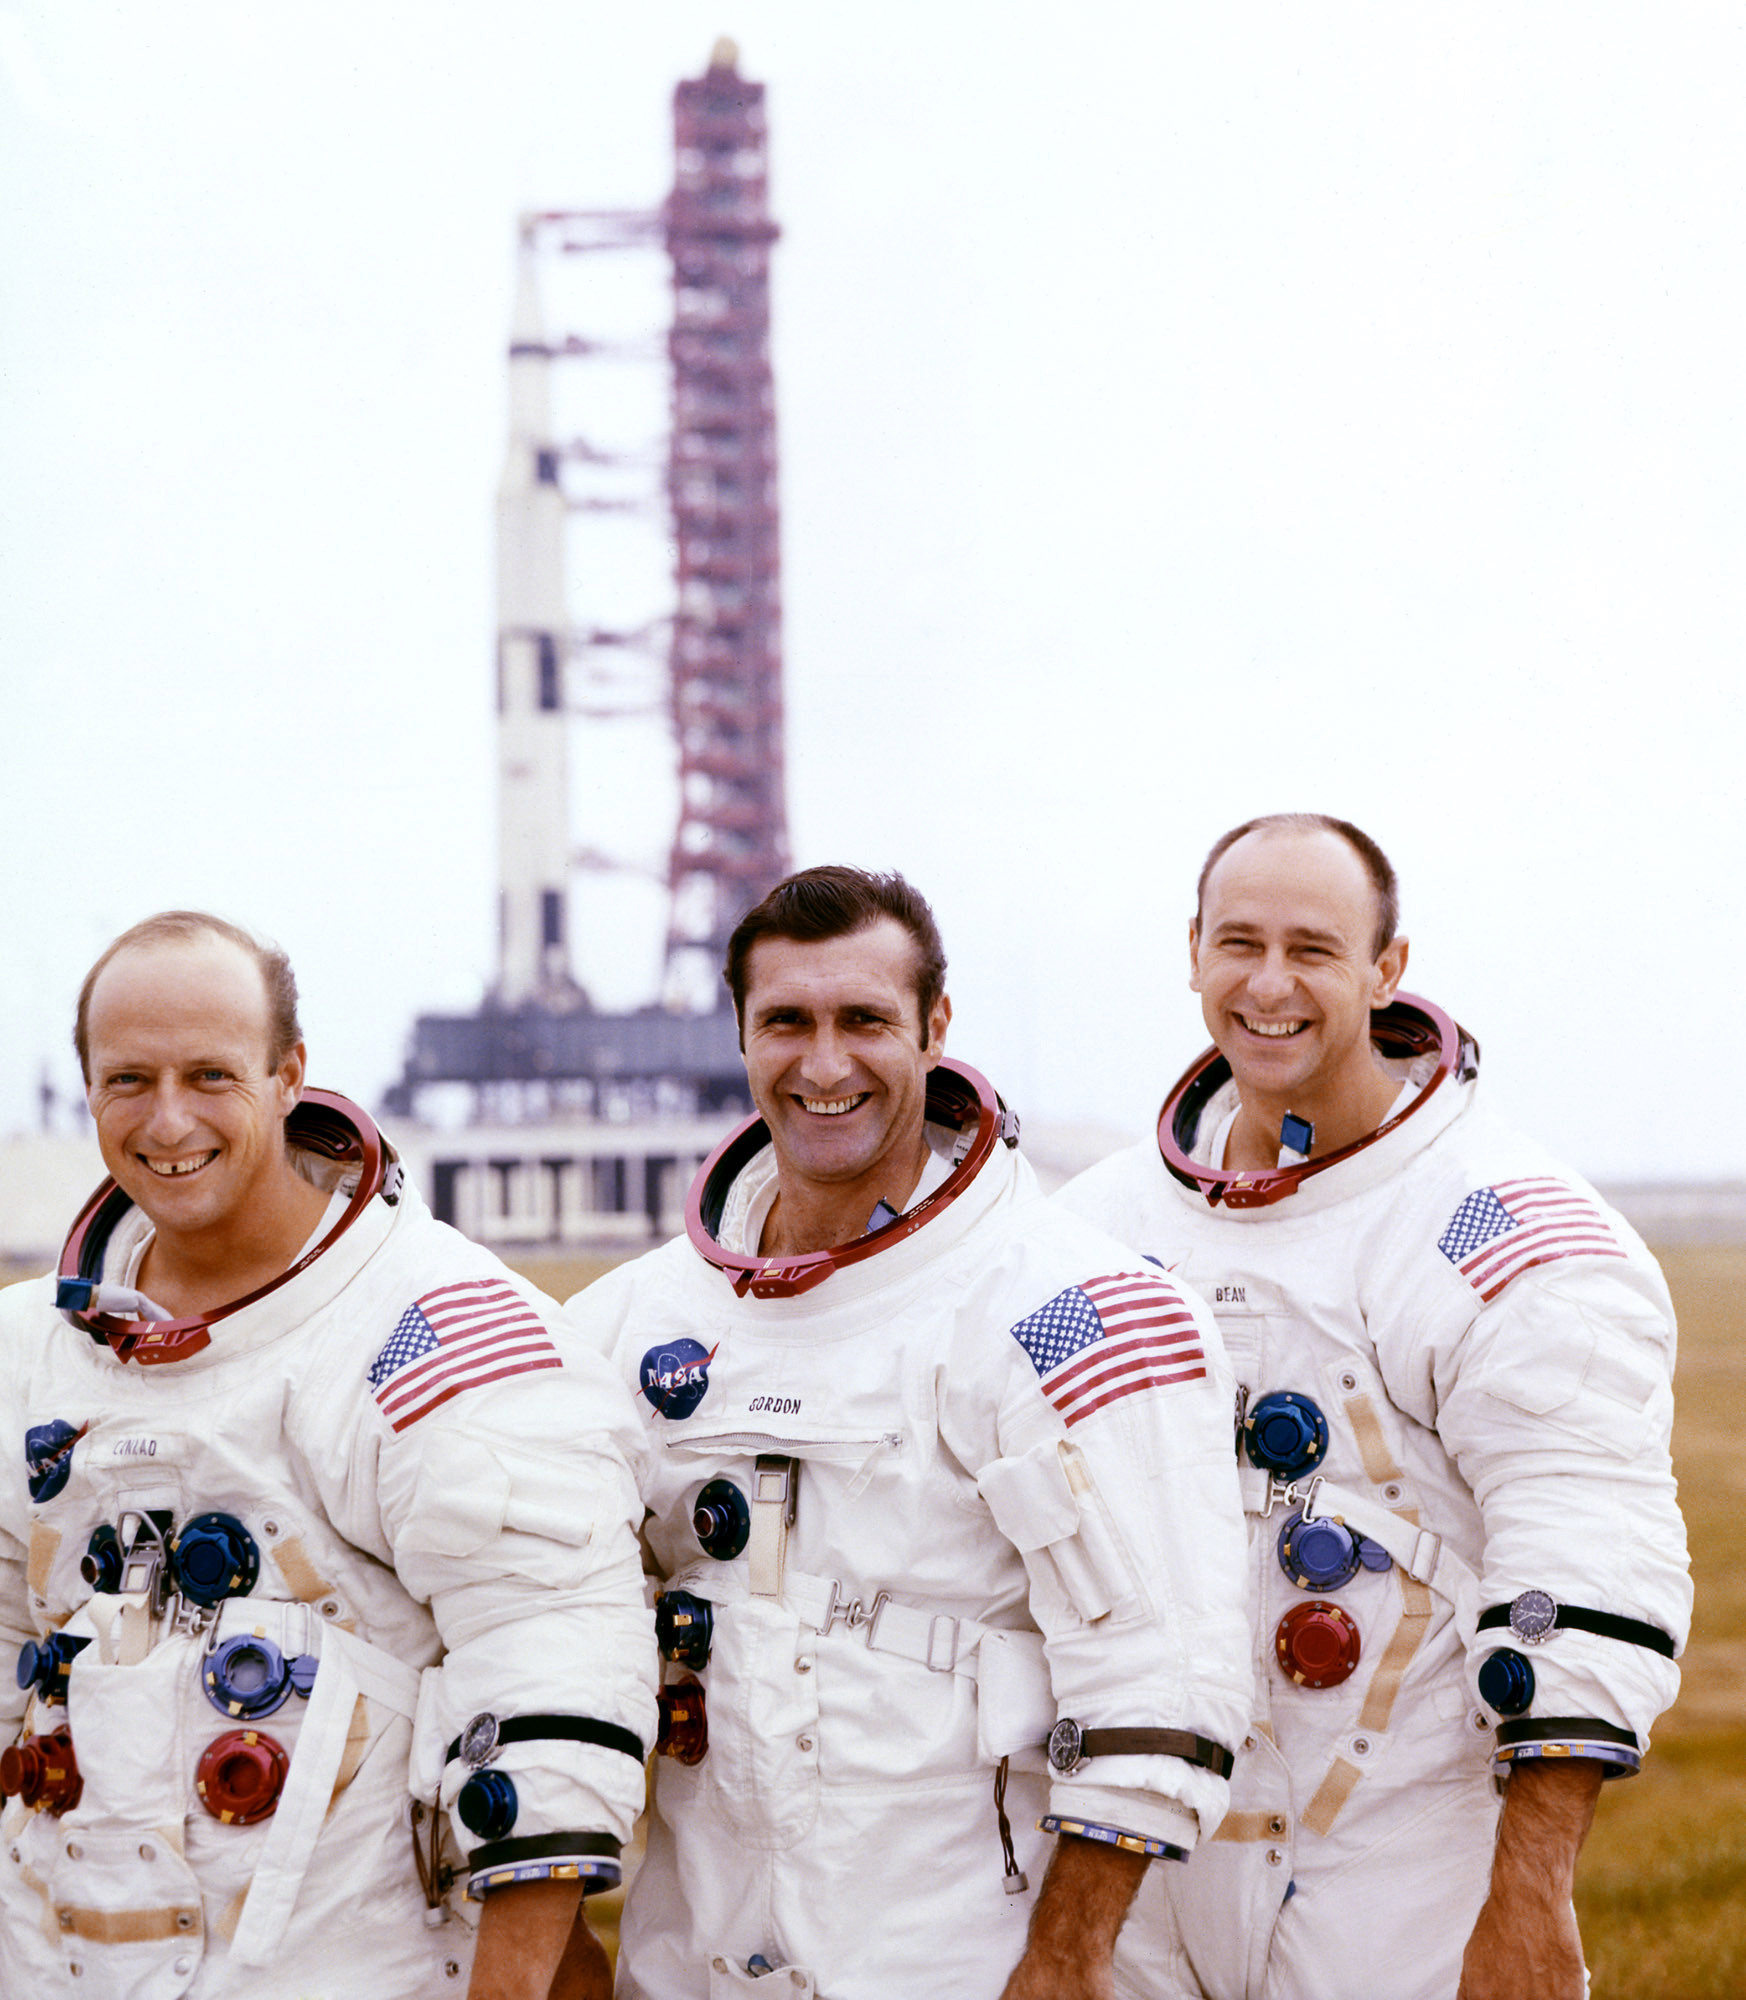 Pete Conrad, Dick Gordon, and Alan Bean pose with their Apollo 12 Saturn V Moon rocket in the background on the pad at Cape Canaveral on October 29, 1969